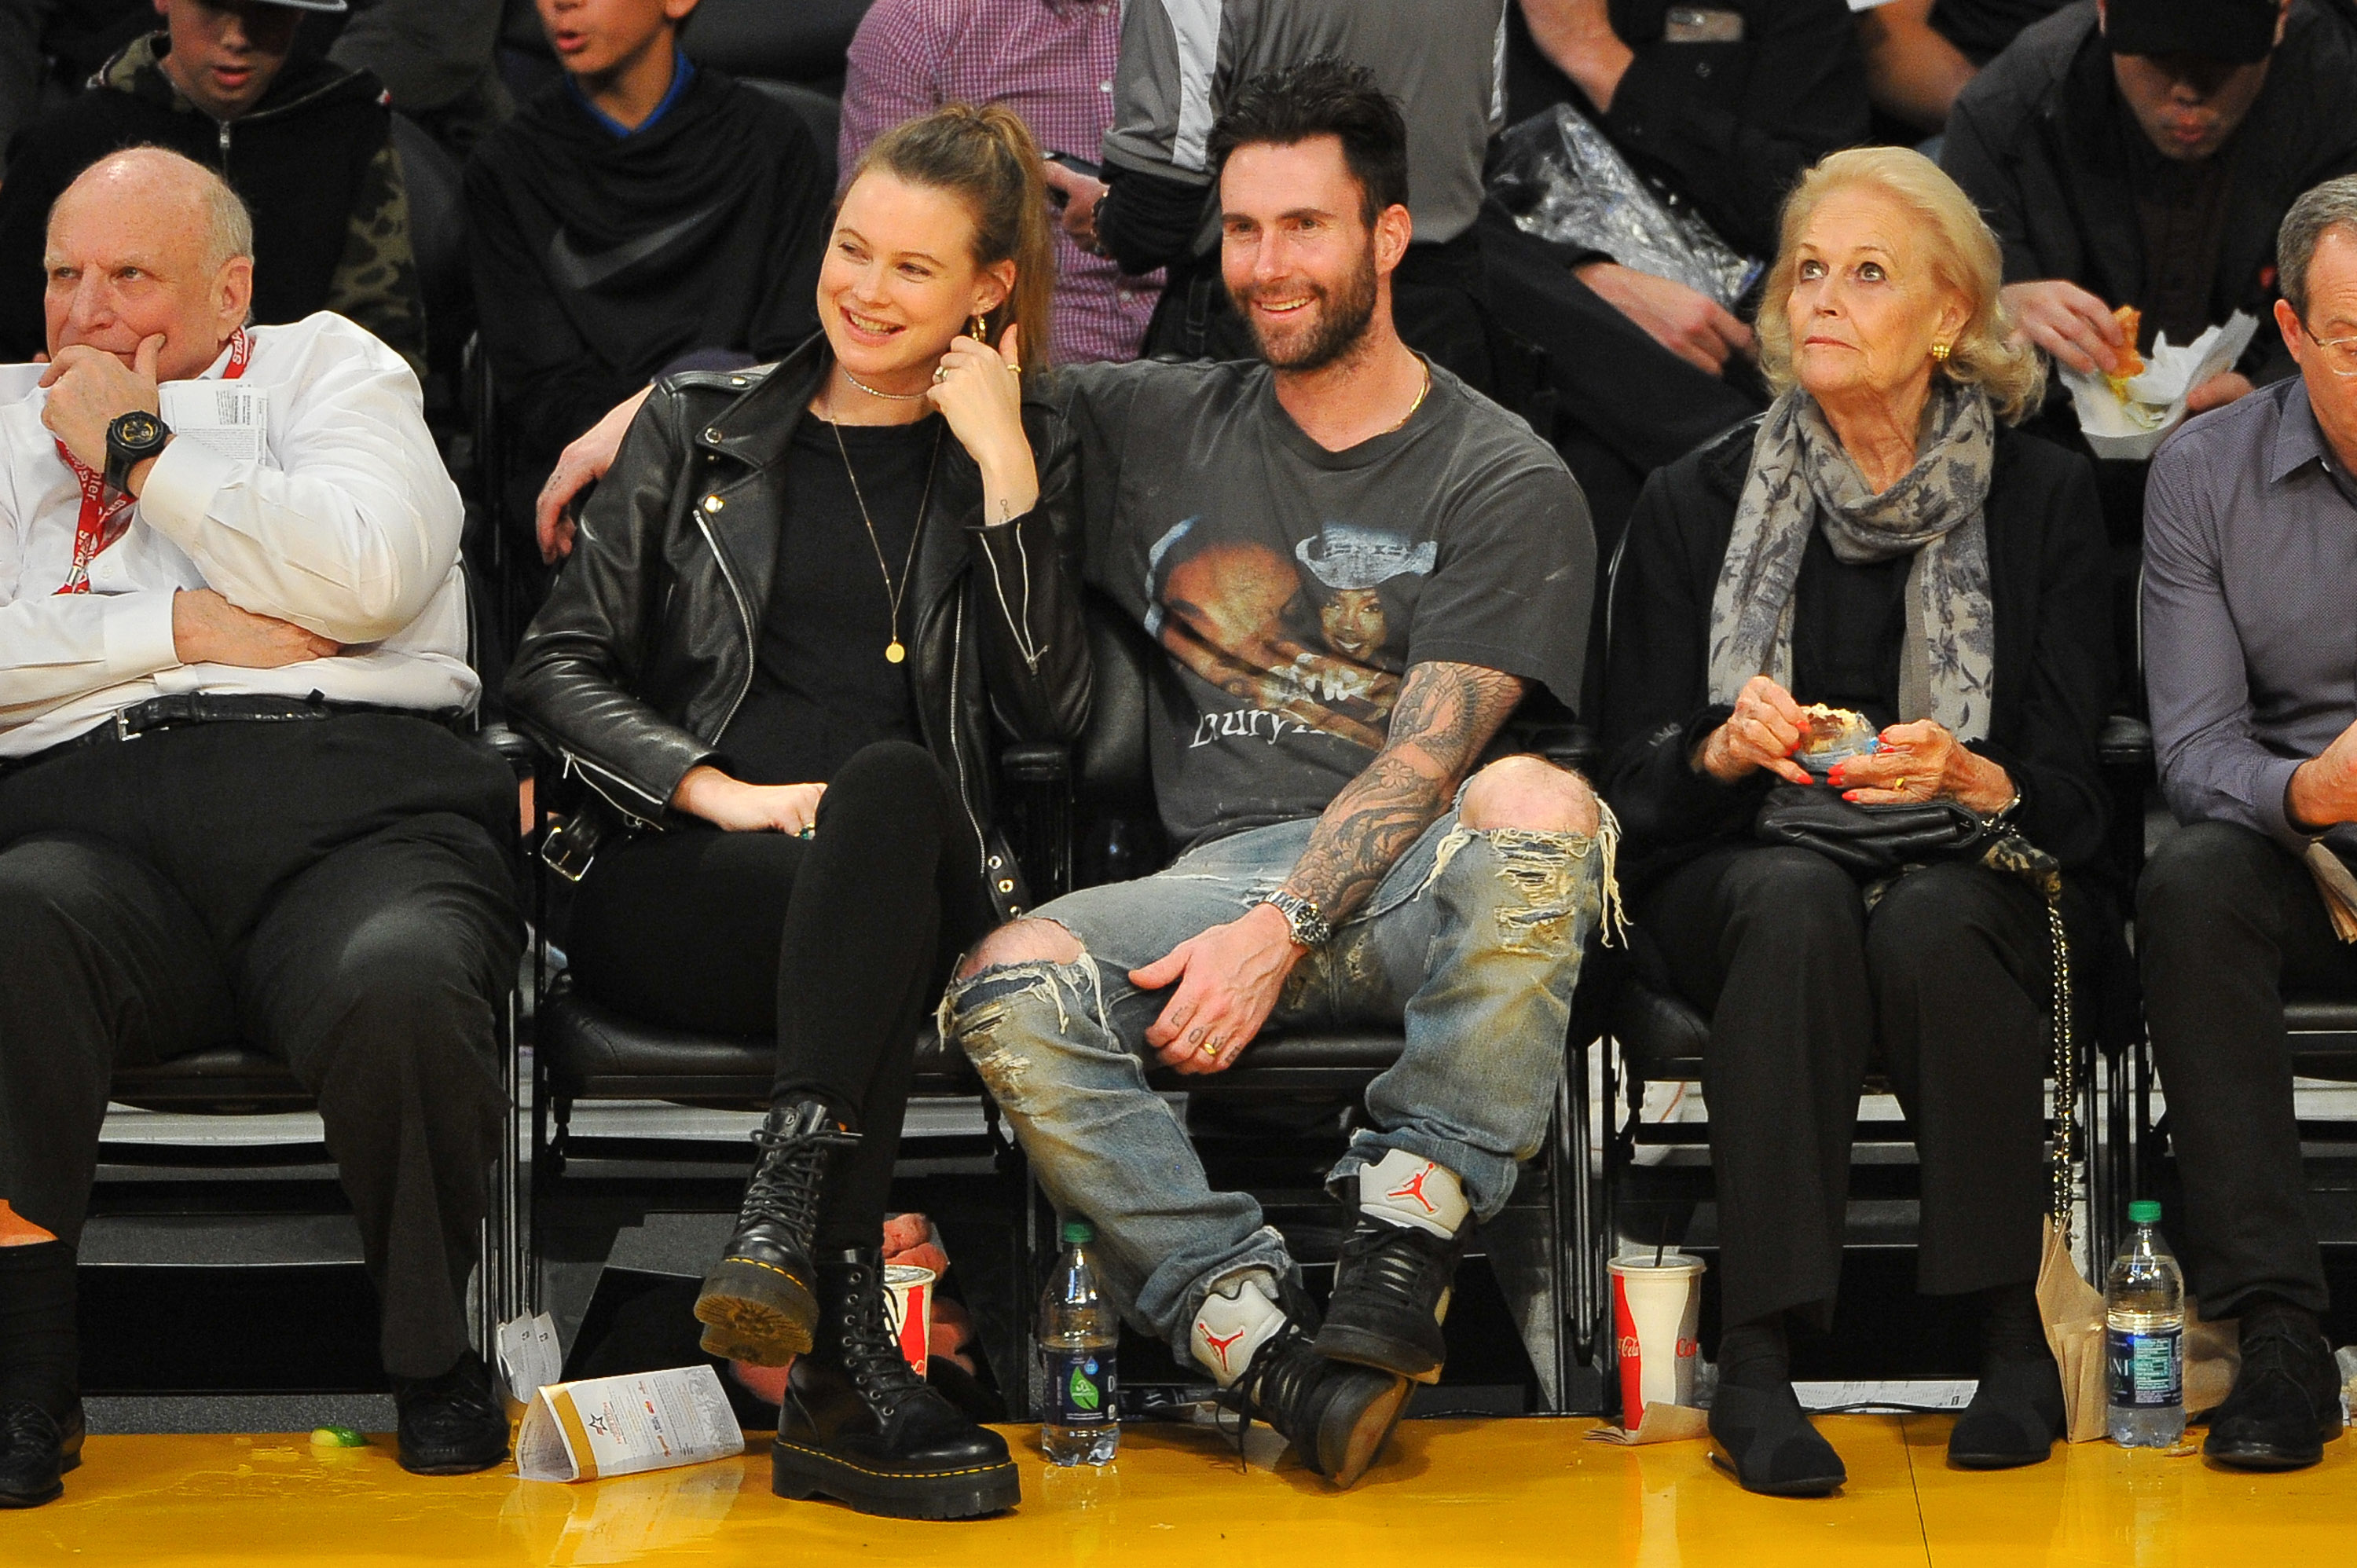 Behati Prinsloo and Adam Levine attend a basketball game between the Los Angeles Lakers and the Philadelphia 76ers at Staples Center on November 15, 2017 in Los Angeles